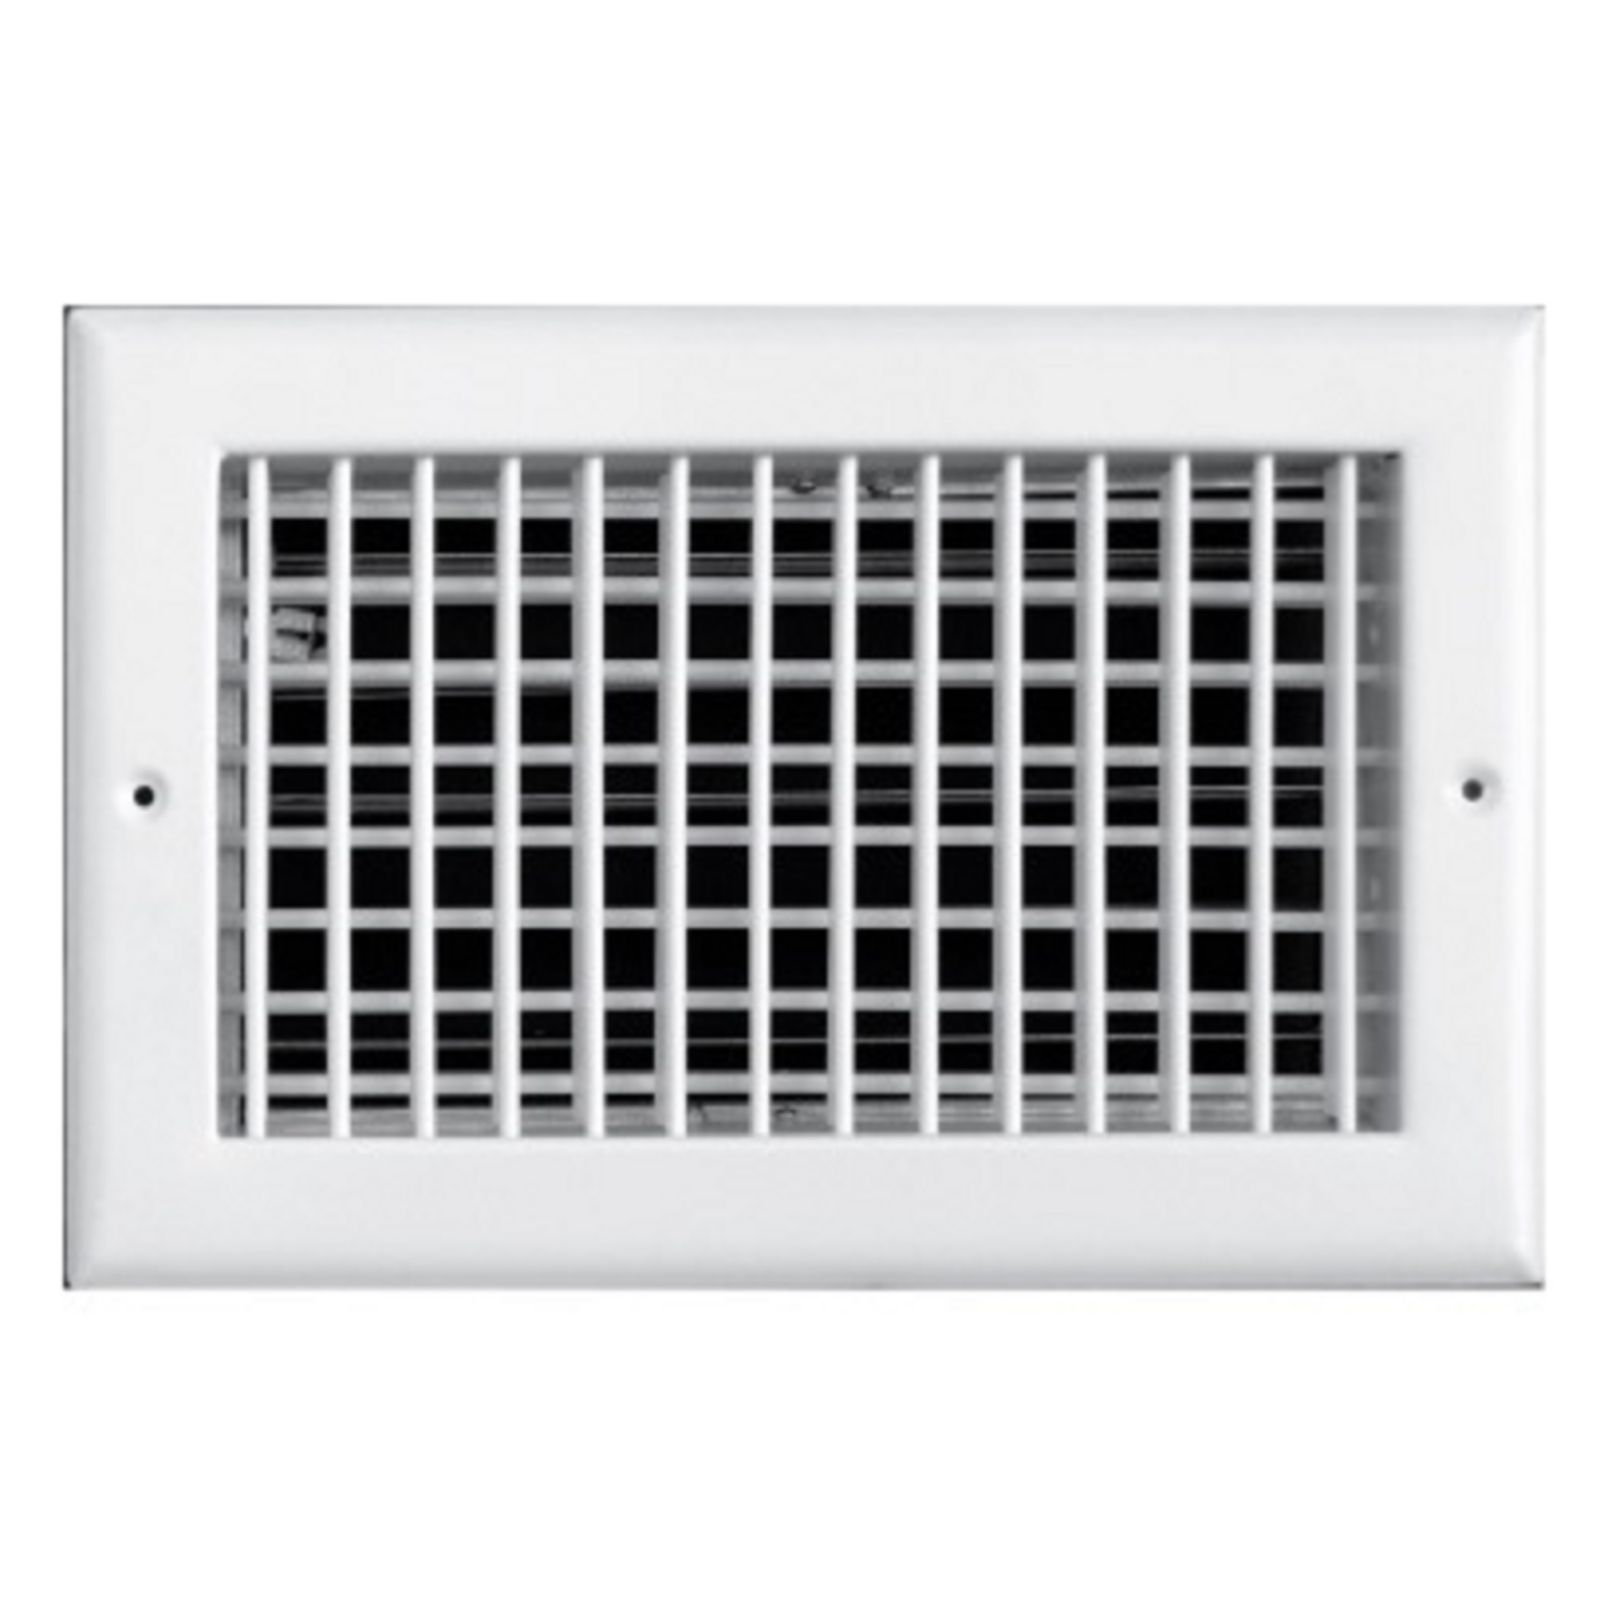 "TRUaire 220VO 14X06 - Steel Adjustable Double Deflection Wall/Ceiling Register With Opposed Blade Damper, White, 14"" X 06"""